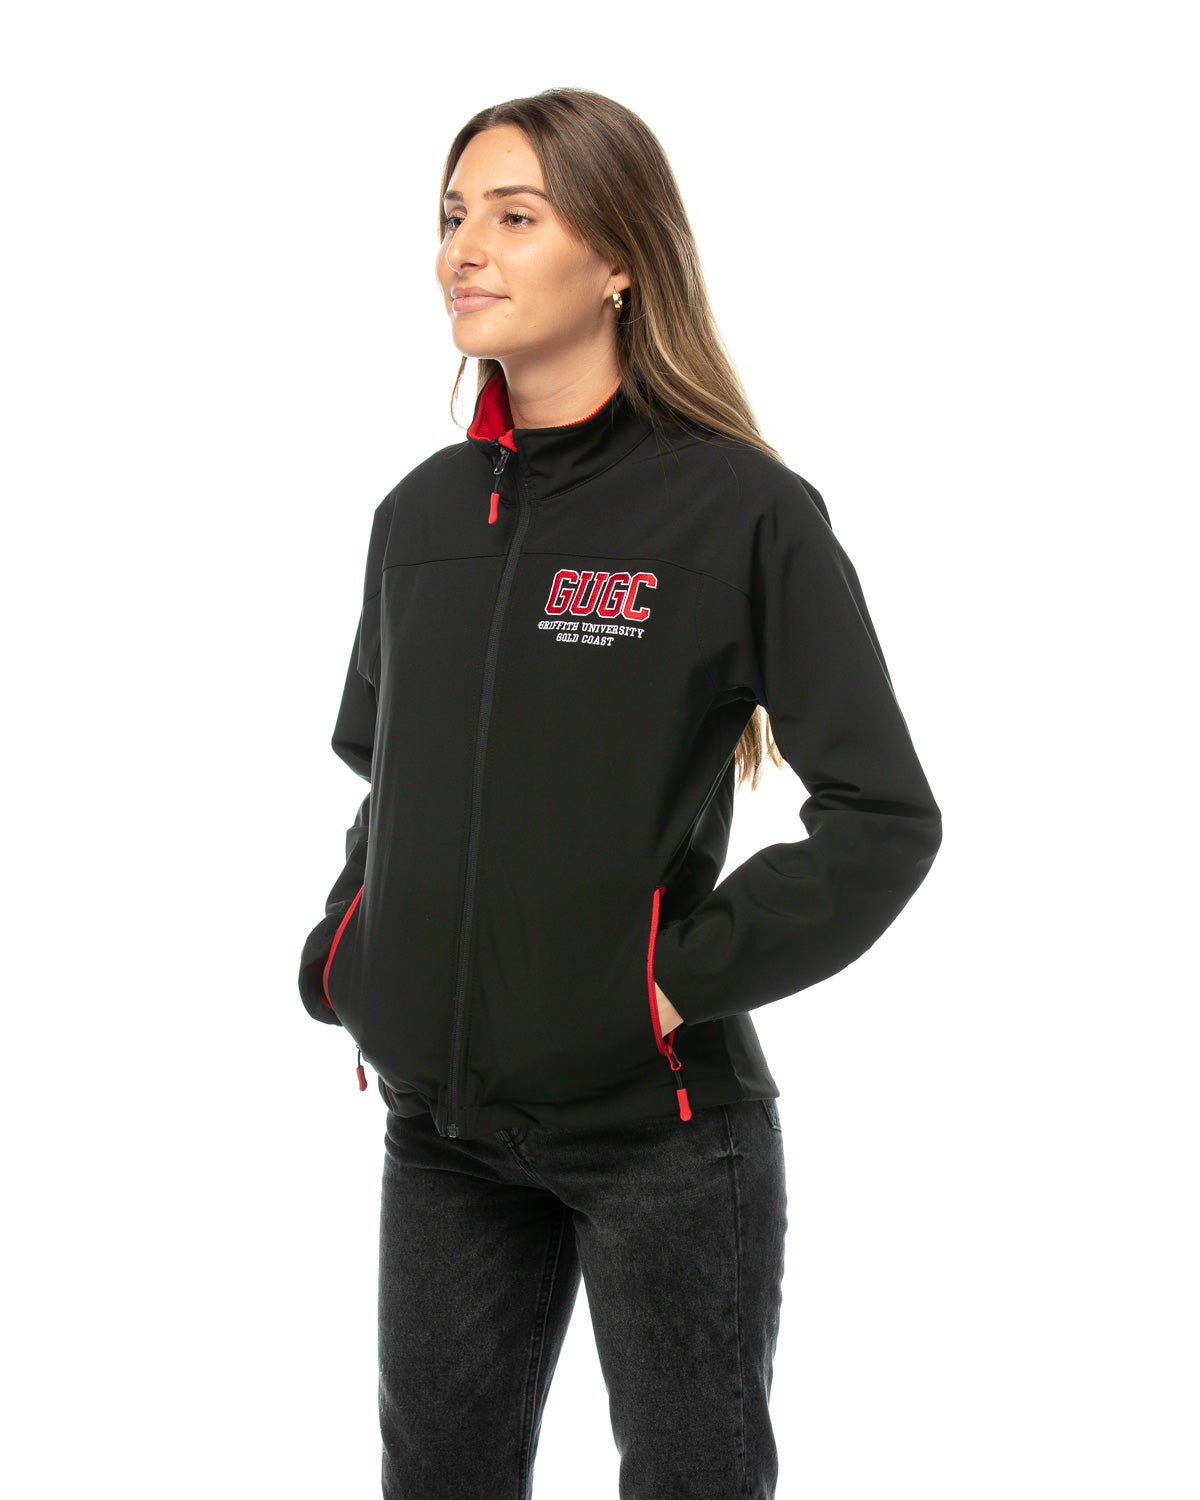 Women's Griffith softshell jacket